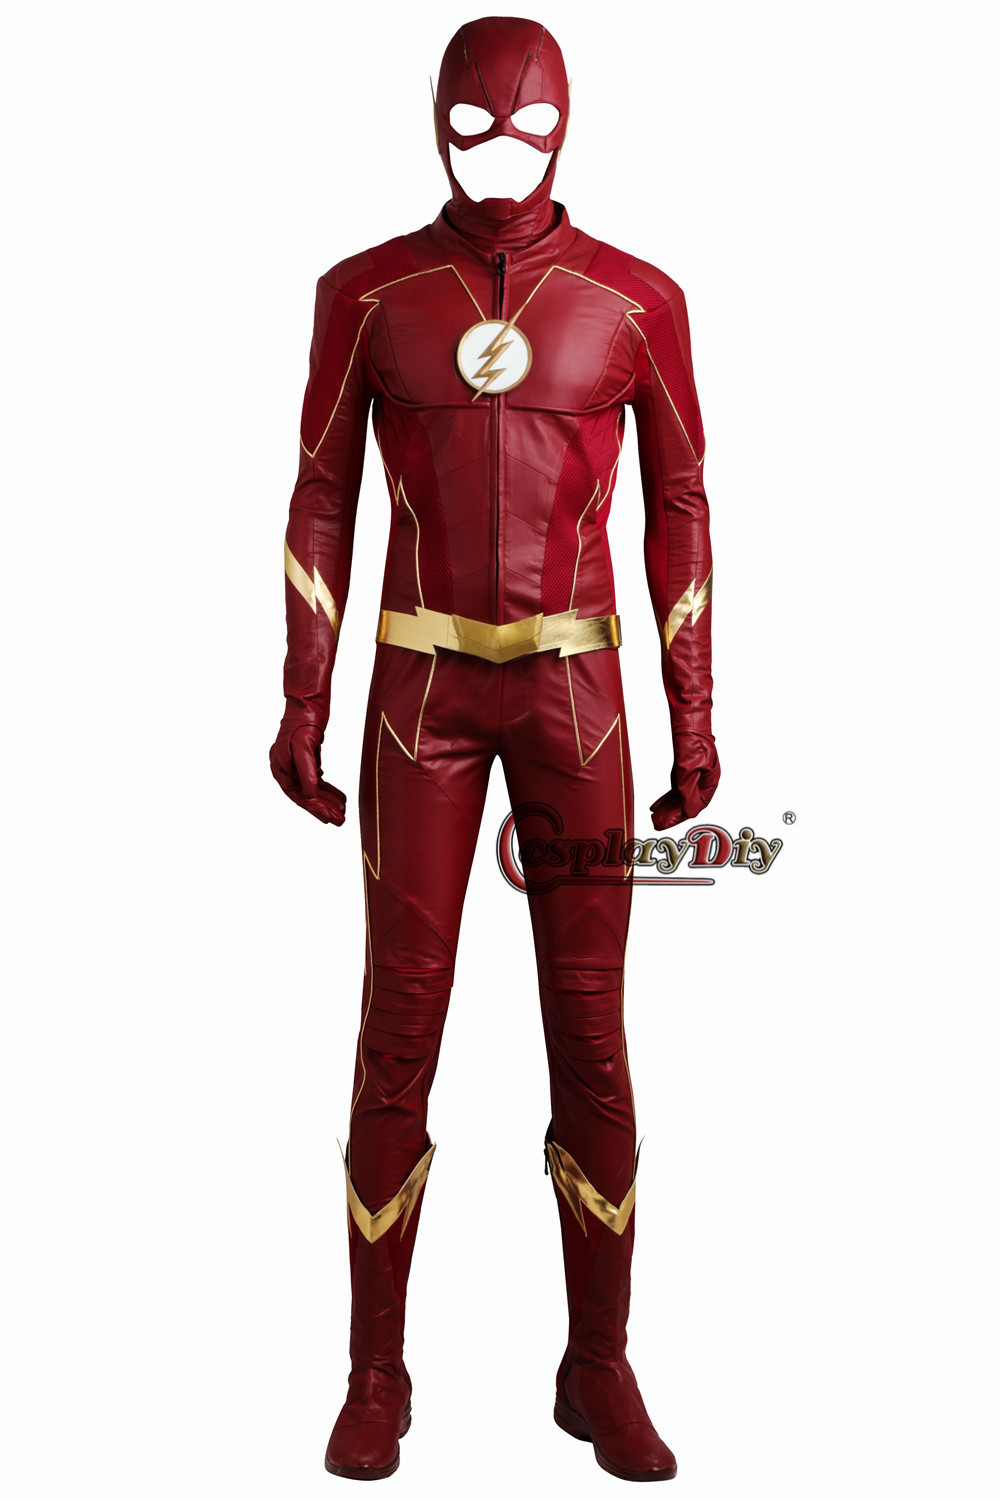 <font><b>The</b></font> <font><b>Flash</b></font> <font><b>Cosplay</b></font> Costume Barry Allen Suit Male <font><b>The</b></font> <font><b>Flash</b></font> Season 4 Barry Allen Costume Superhero Outfit <font><b>With</b></font> <font><b>Boots</b></font> Adult Men image